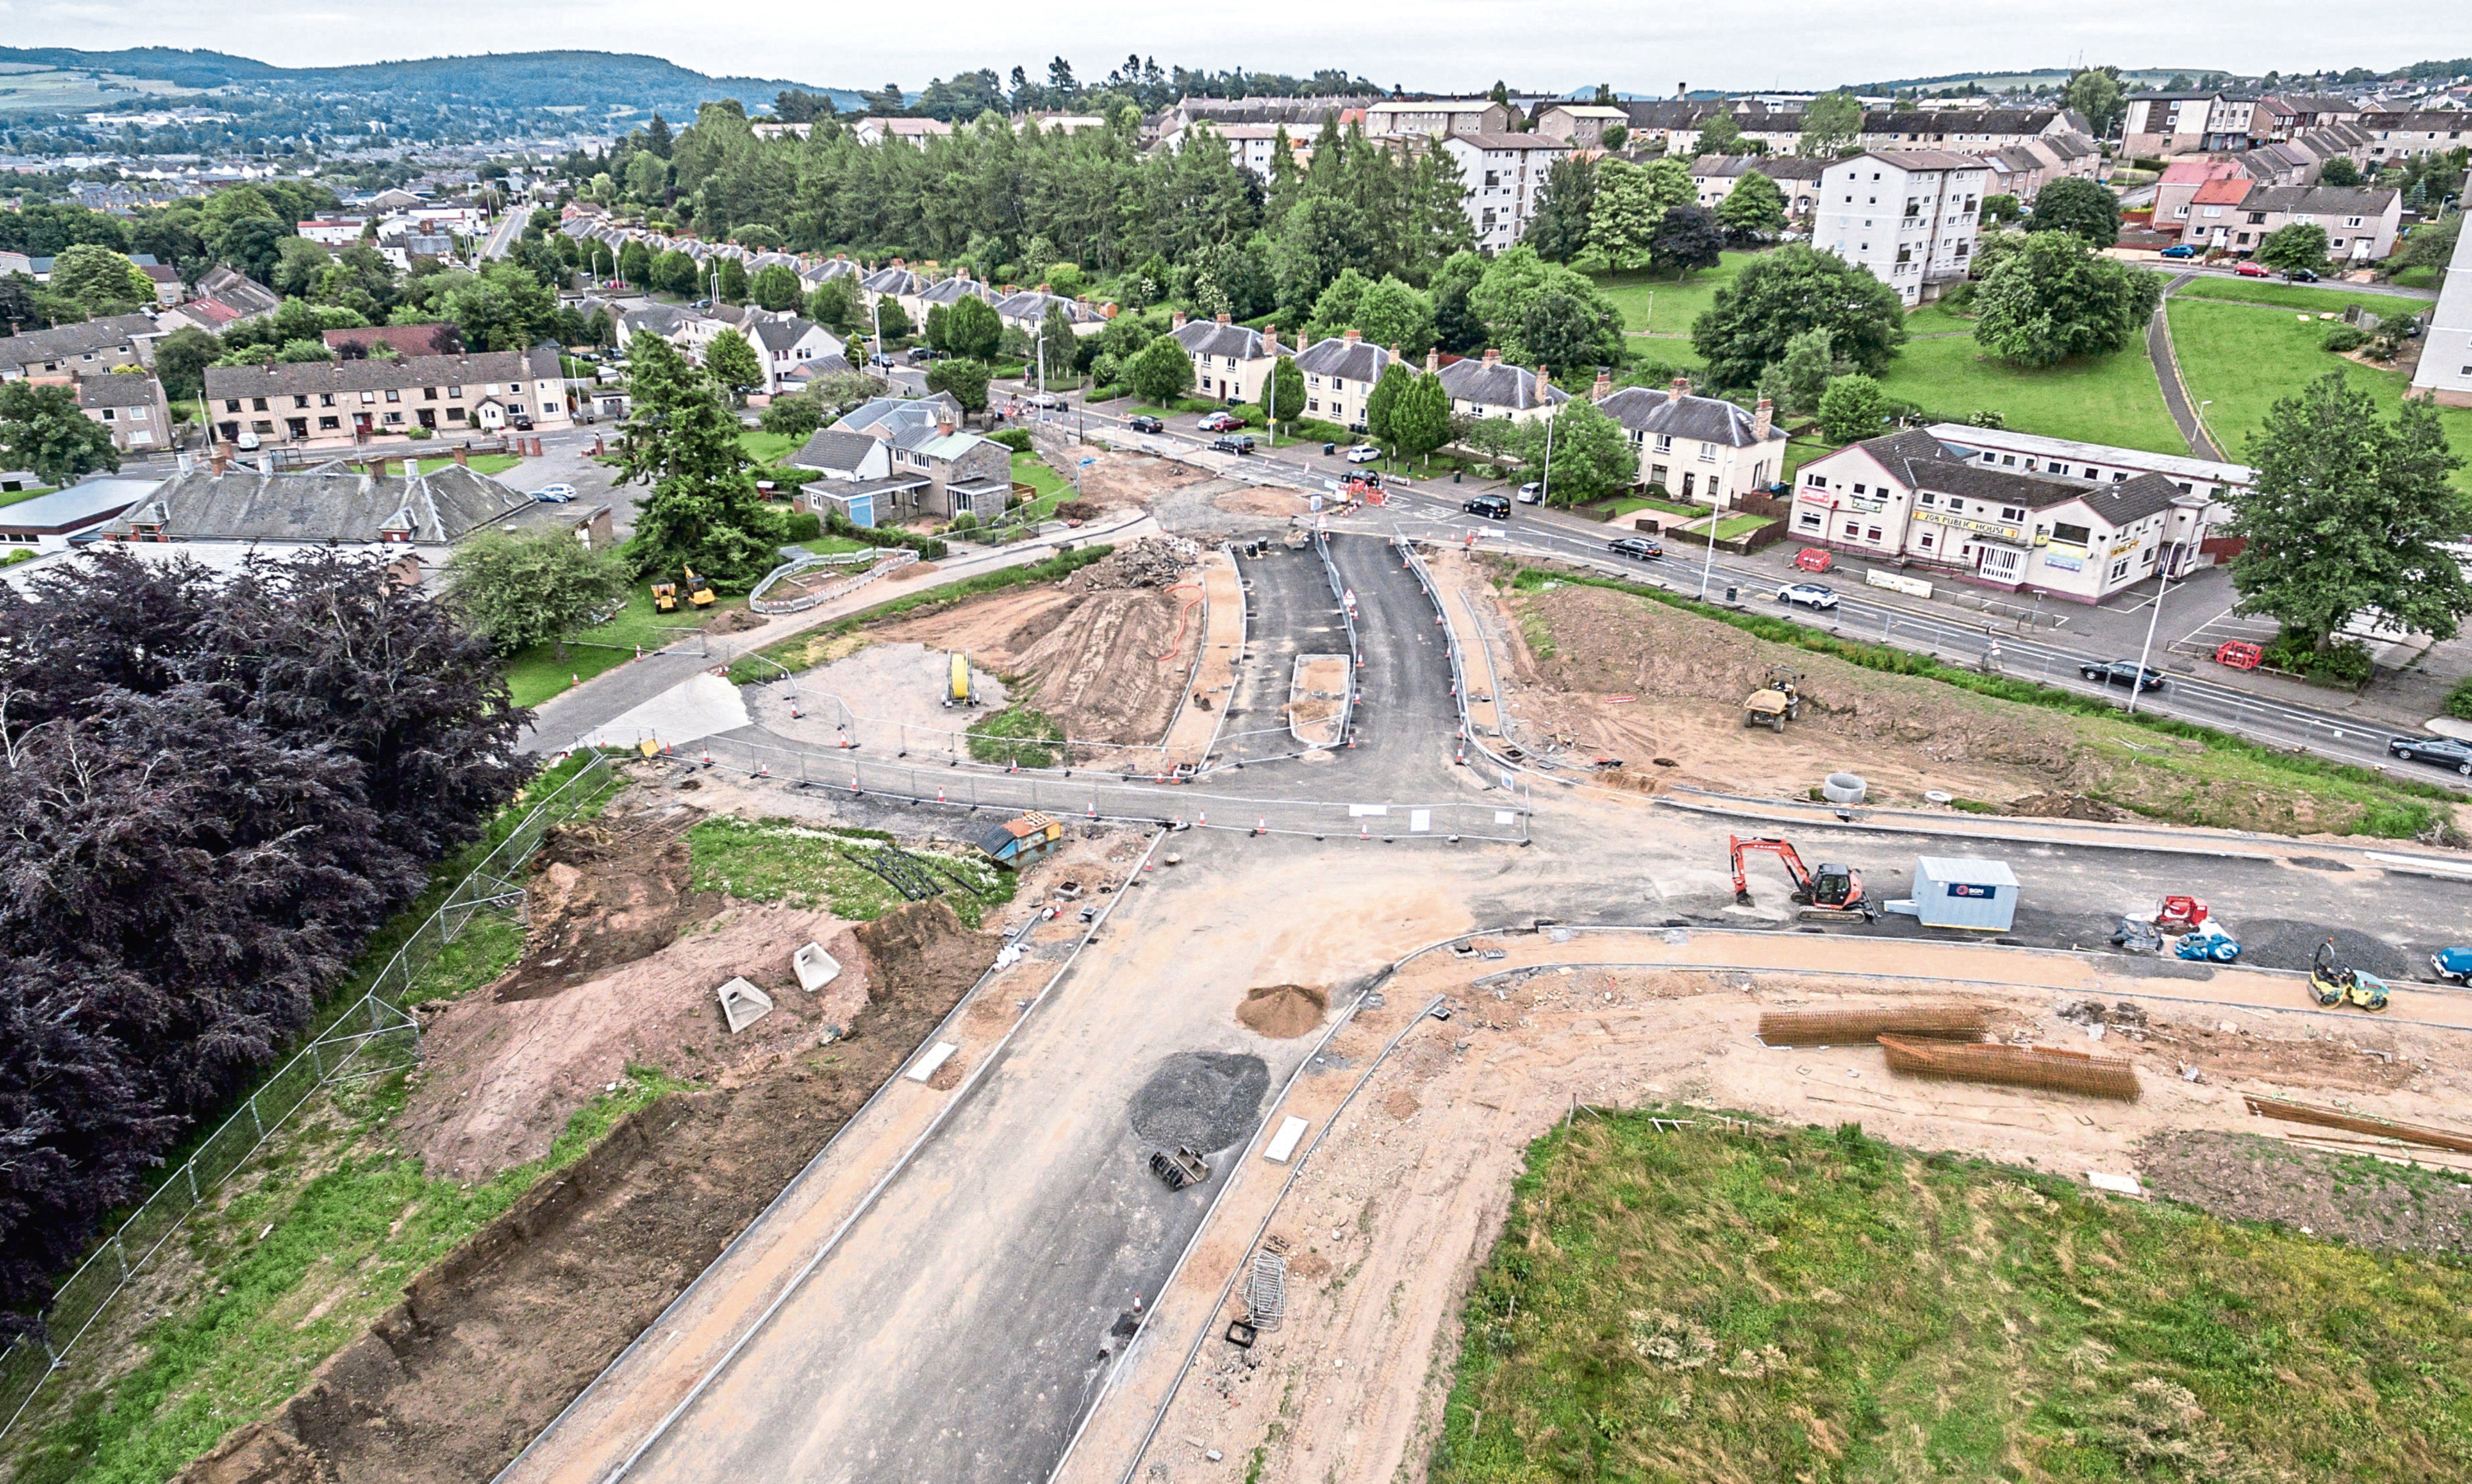 A9/A85 Crieff Road junction improvements project for Perth and Kinross Council through the Scape framework